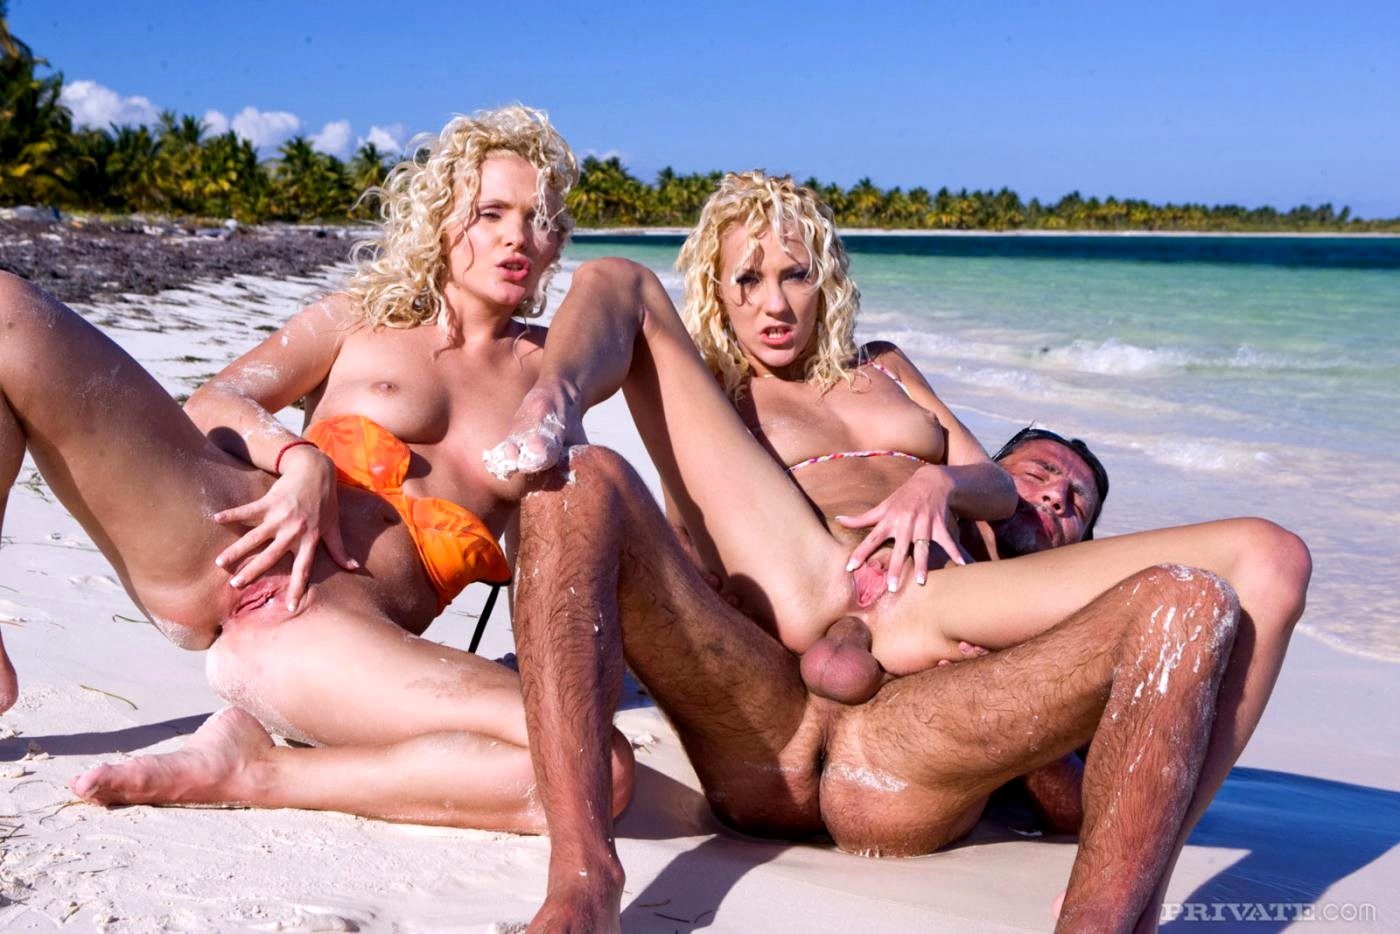 ukraine-beach-sex-pic-gifs-men-masterbating